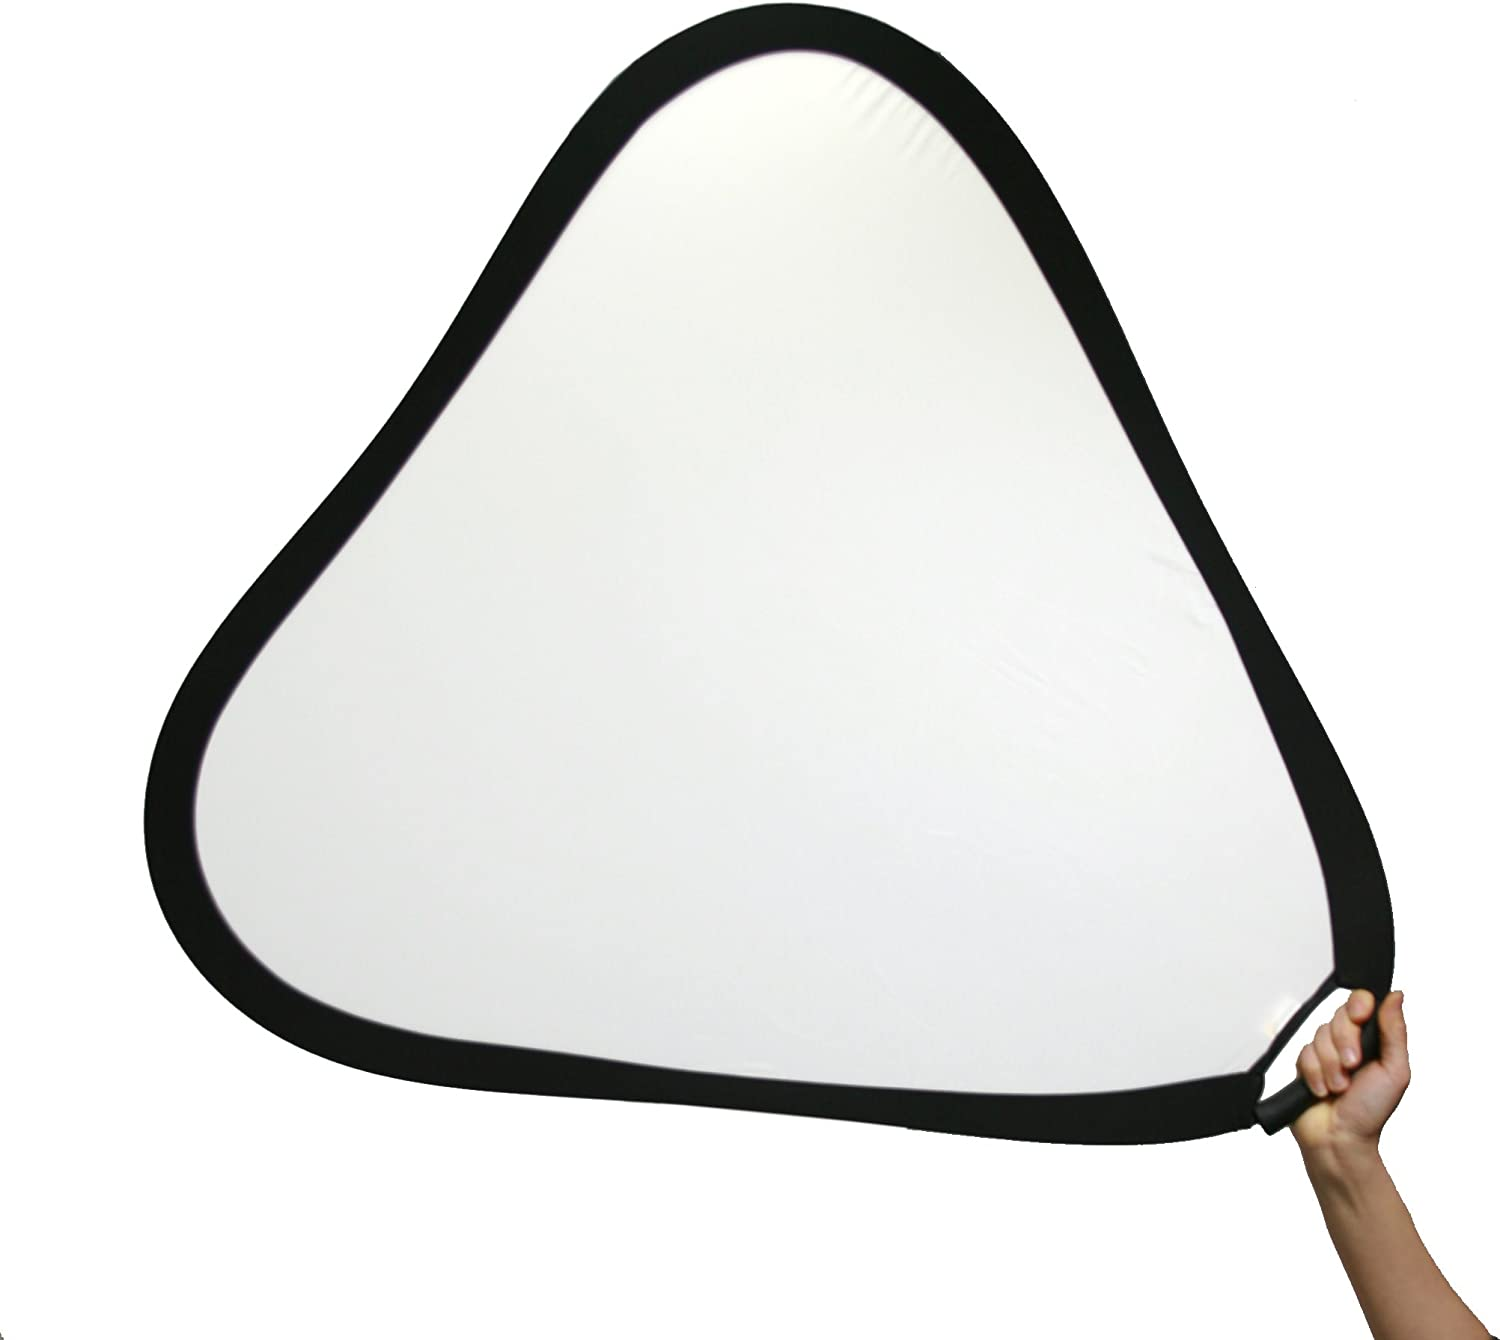 Hand Held Diffuser Translucent Diffuser Softbox 32-Inch by Fancierstudio RE2014W